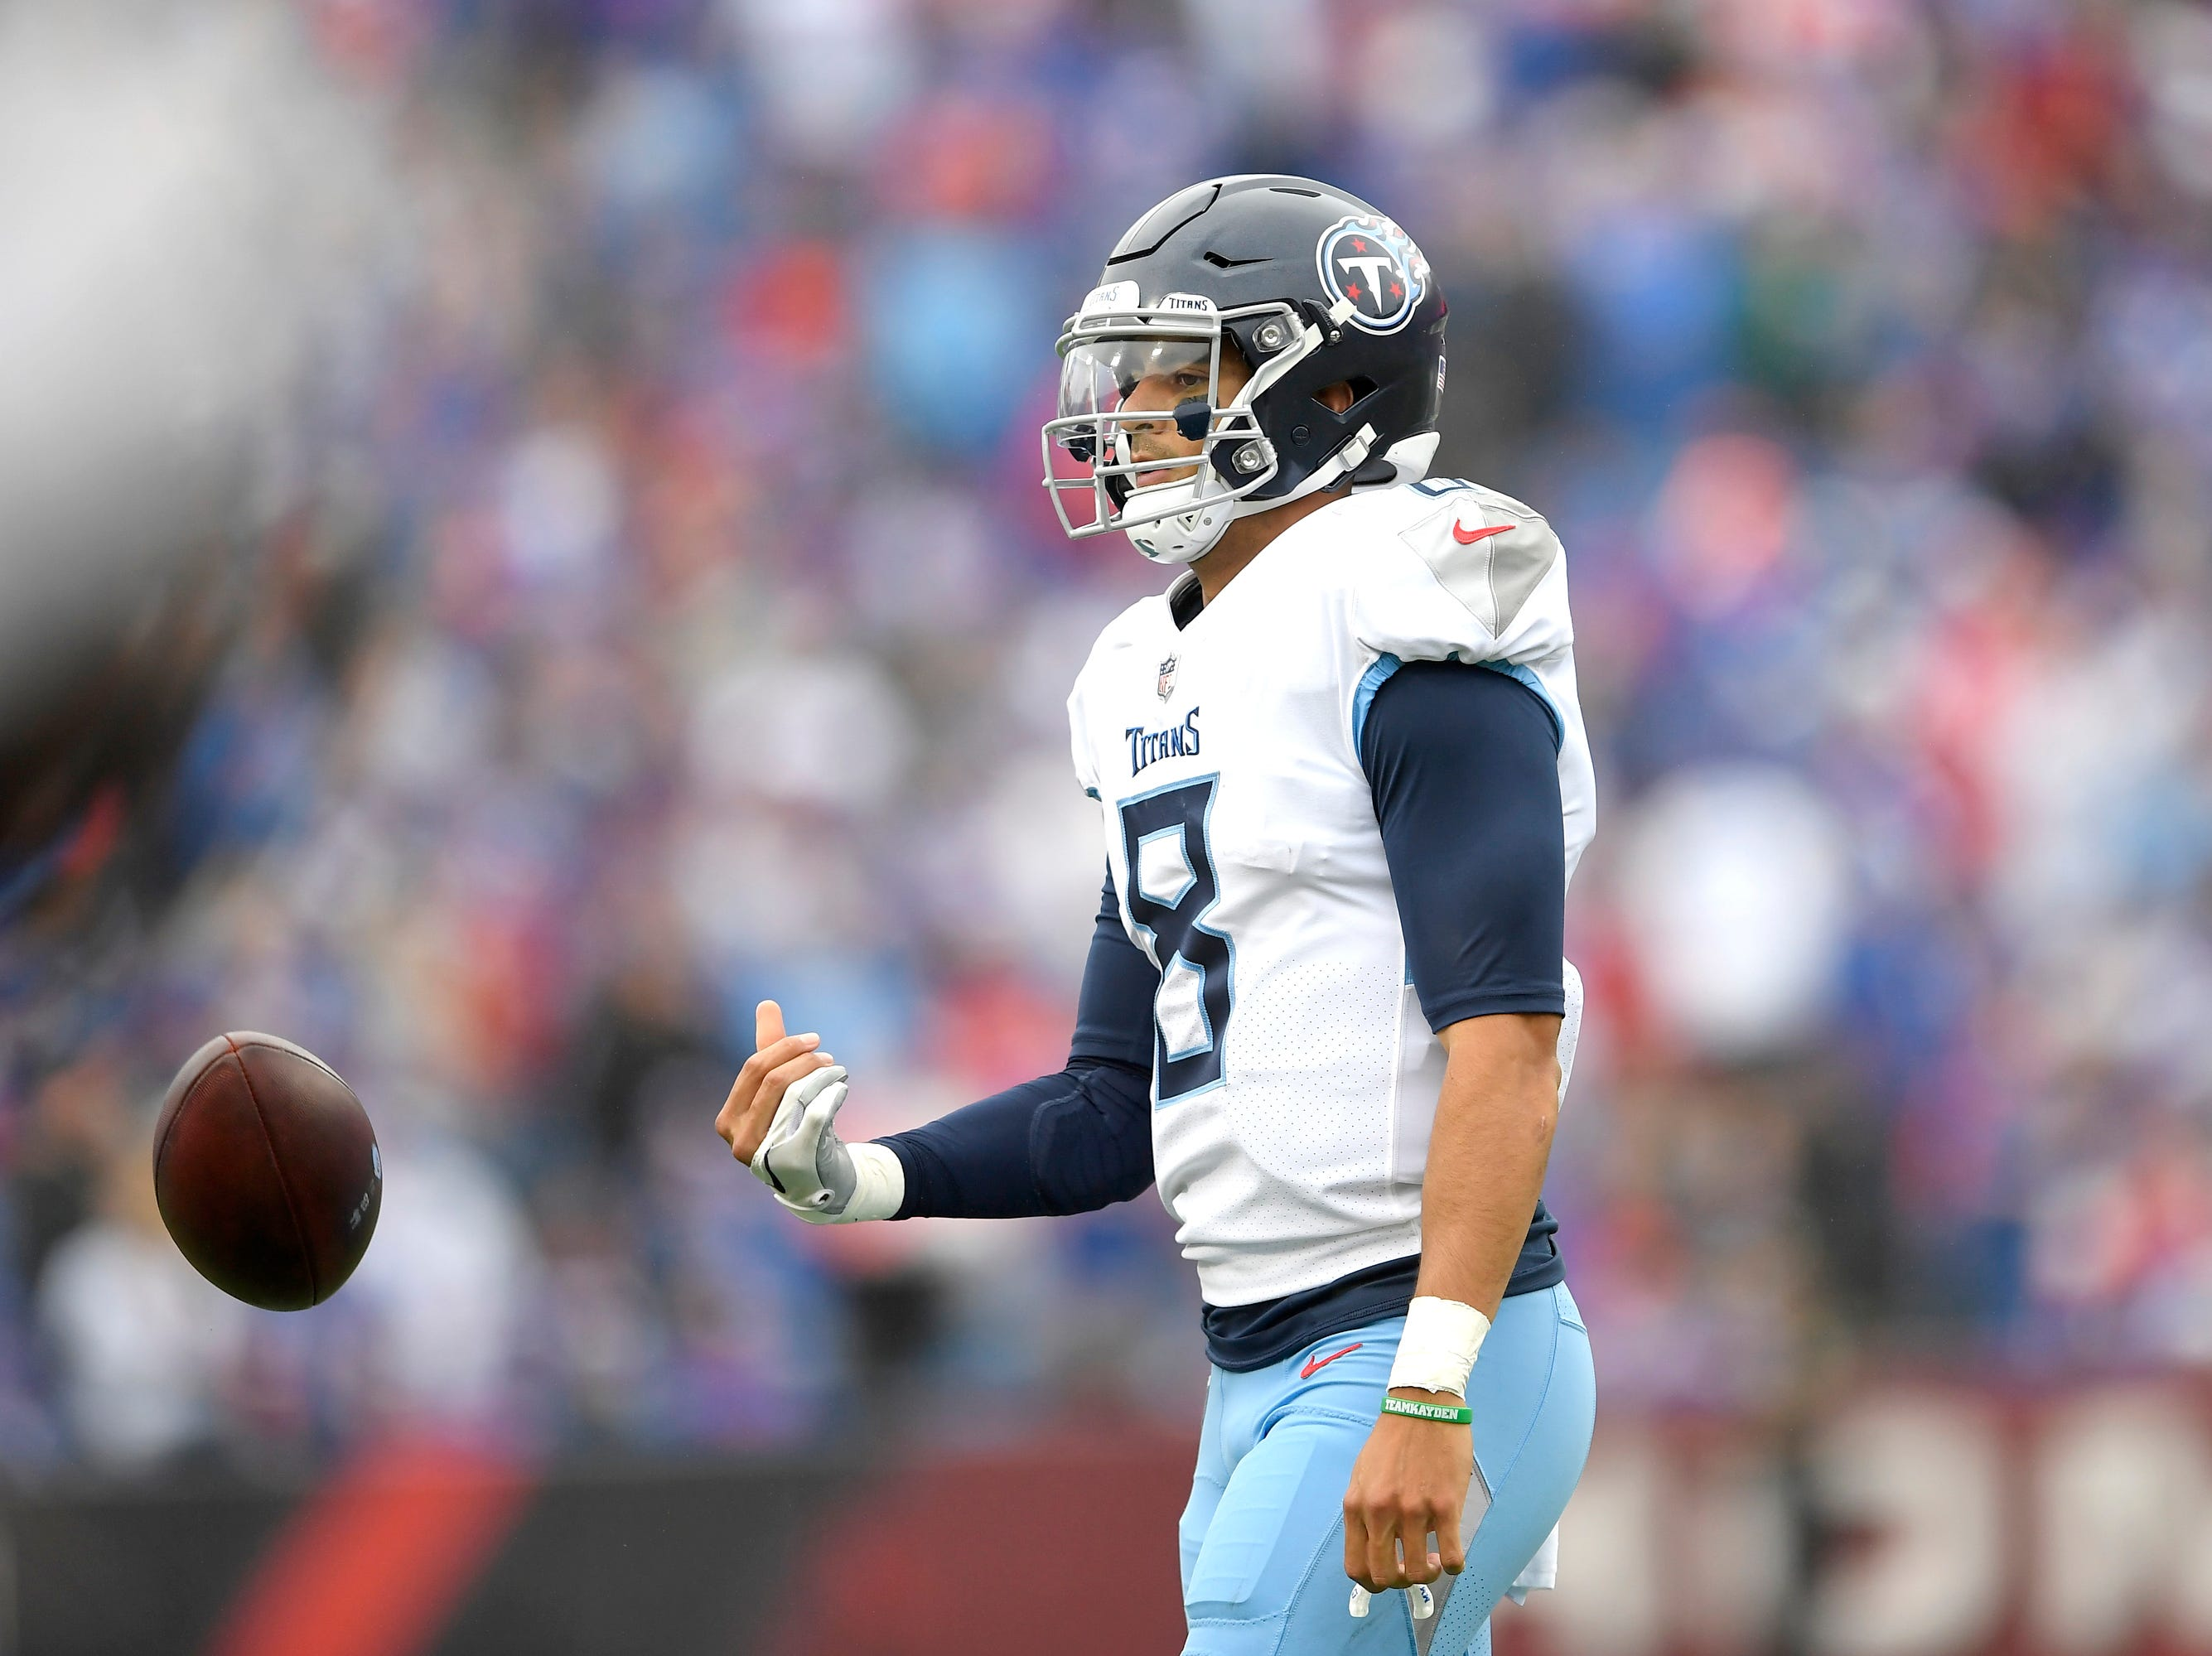 Tennessee Titans quarterback Marcus Mariota tosses the ball to an official after being brought down by Buffalo Bills defenders during the first half of an NFL football game, Sunday, Oct. 7, 2018, in Orchard Park, N.Y. (AP Photo/Adrian Kraus)